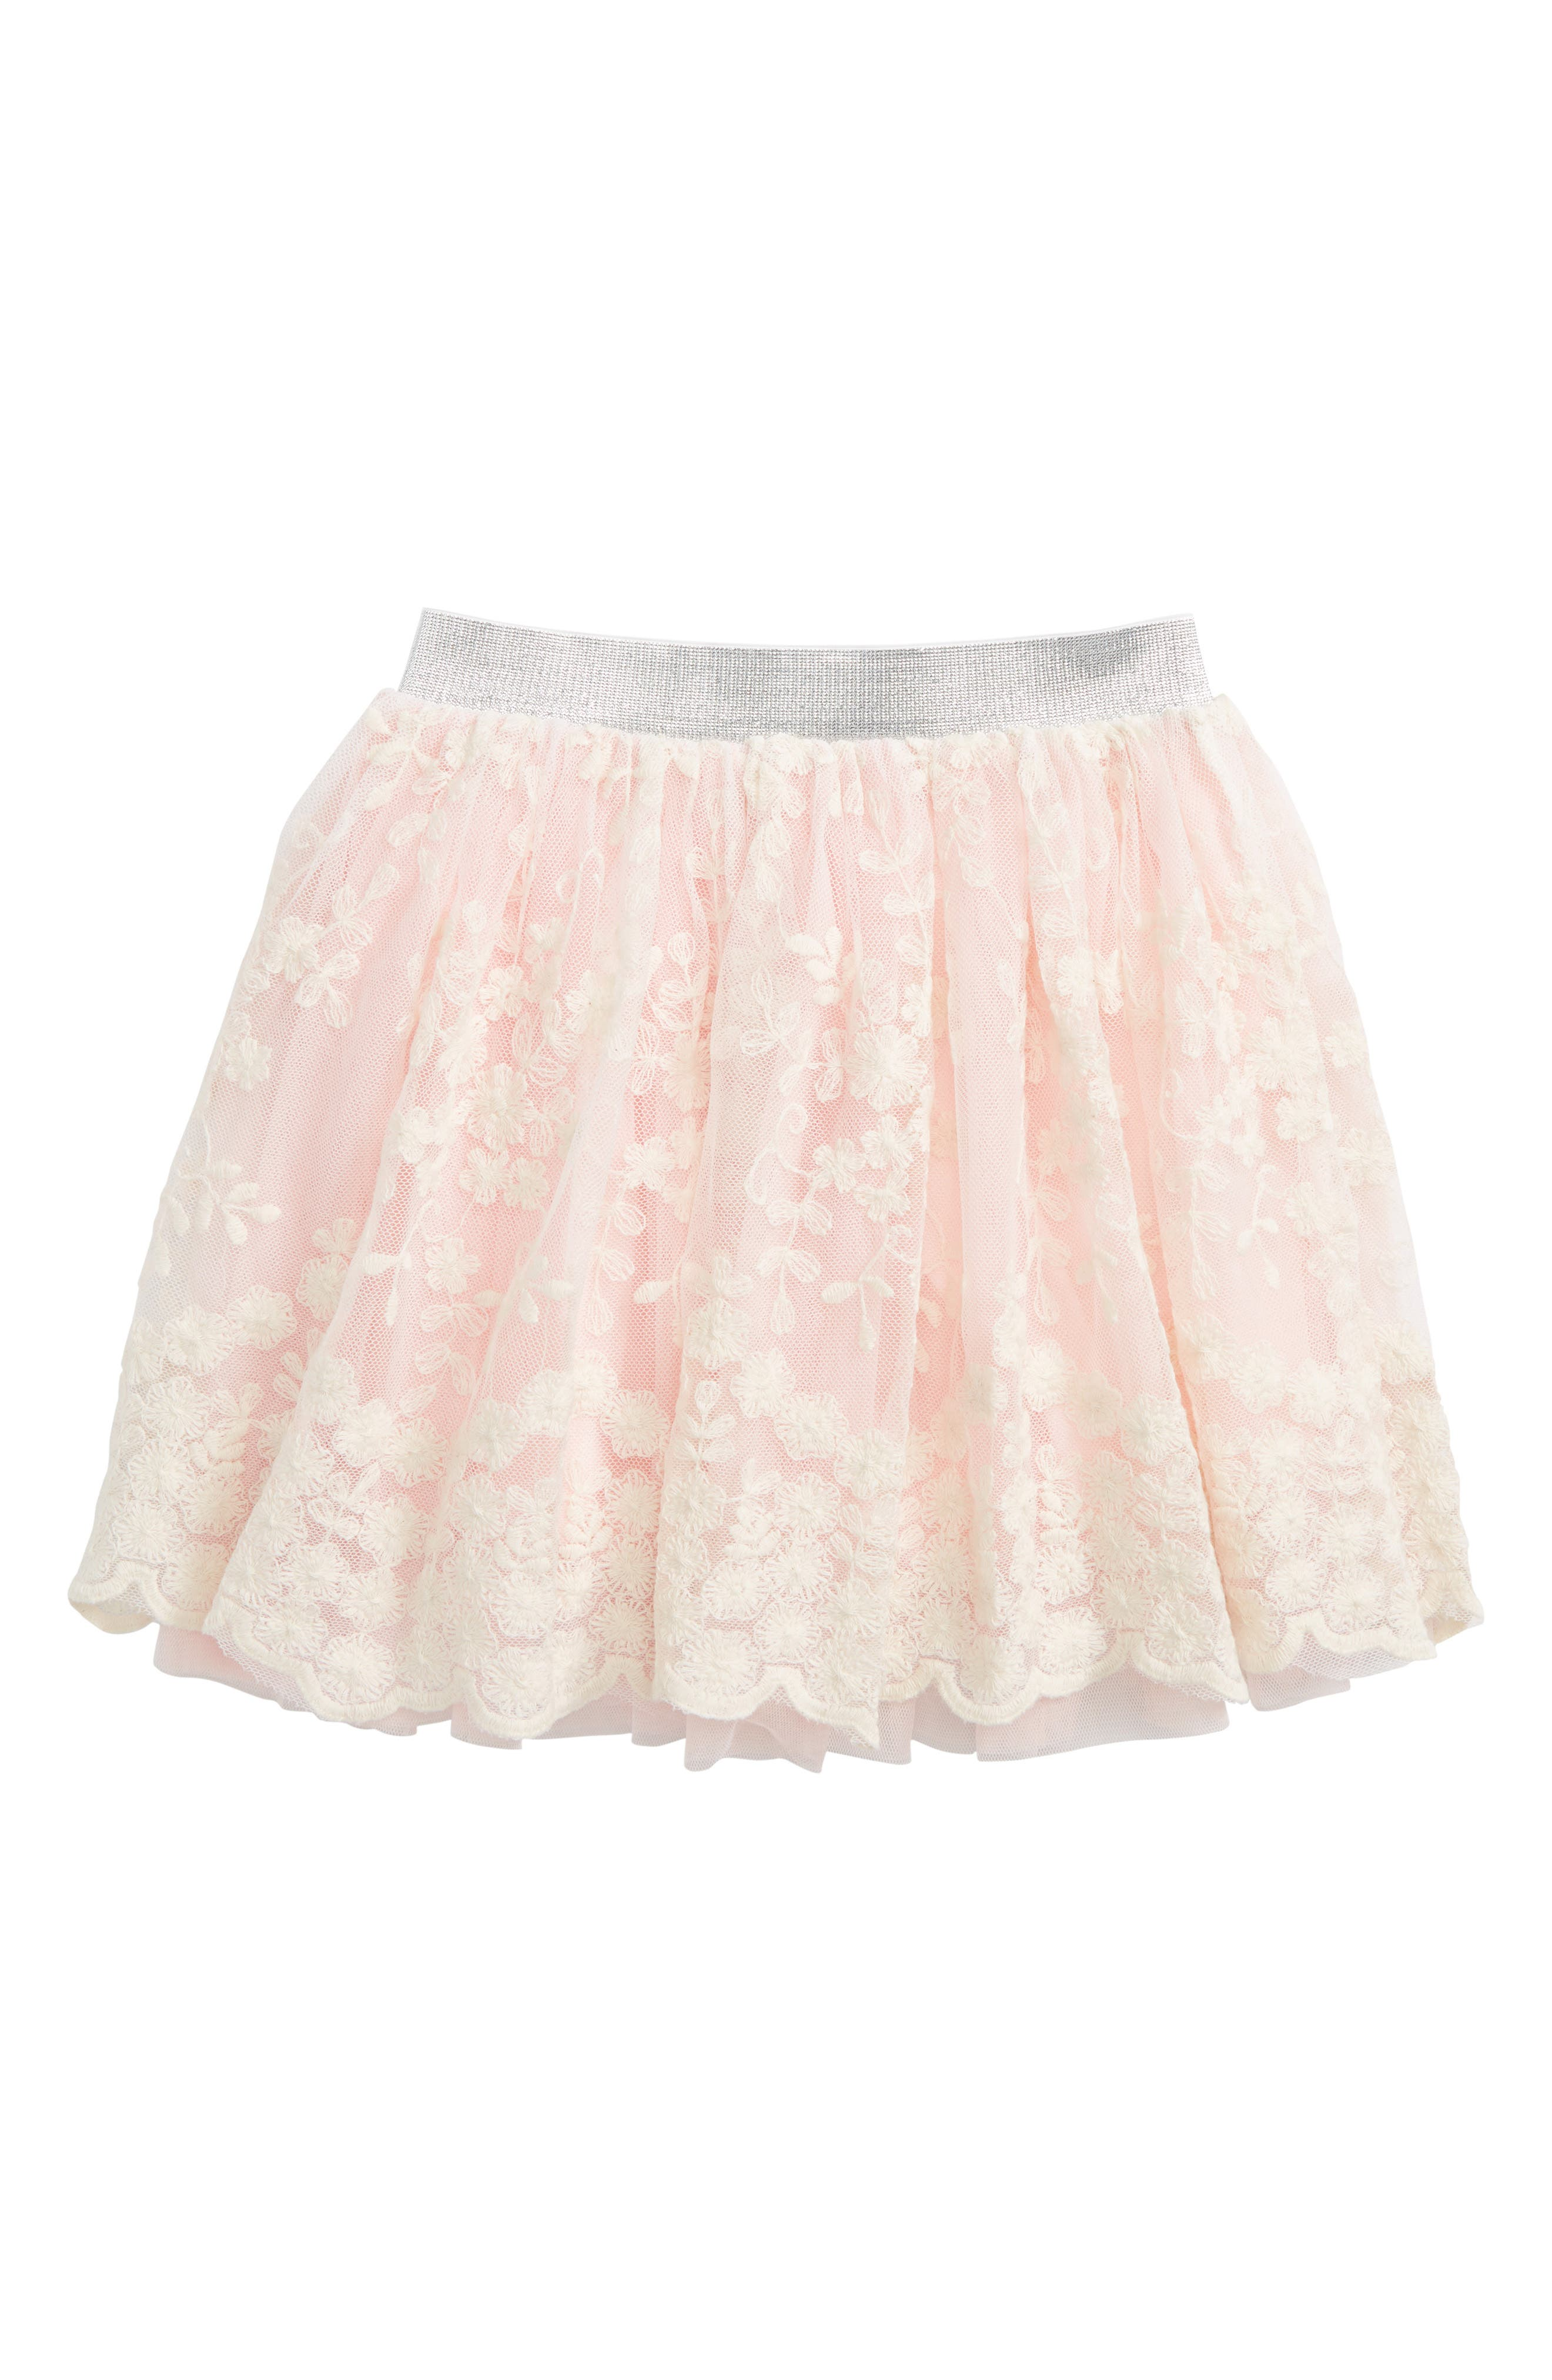 Truly Me Floral Lace Skirt (Toddler Girls & Little Girls)